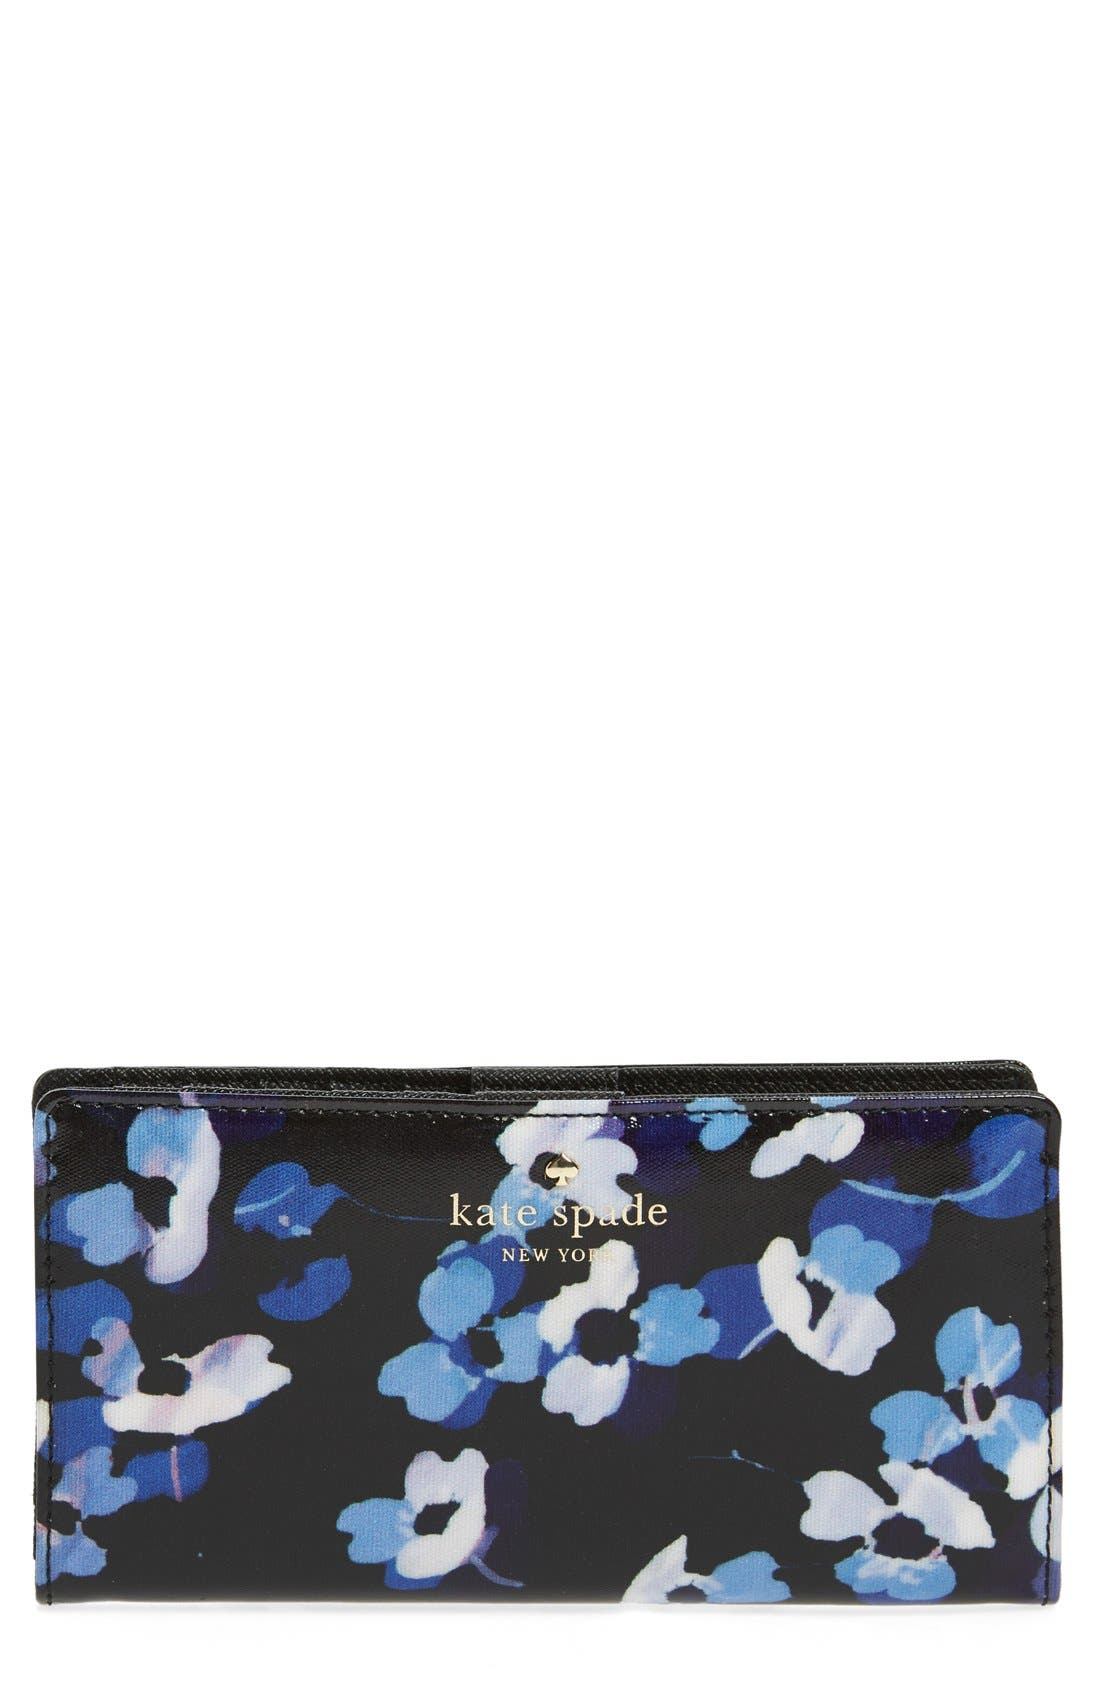 Main Image - kate spade new york 'cedar street - floral stacy' coated canvas wallet